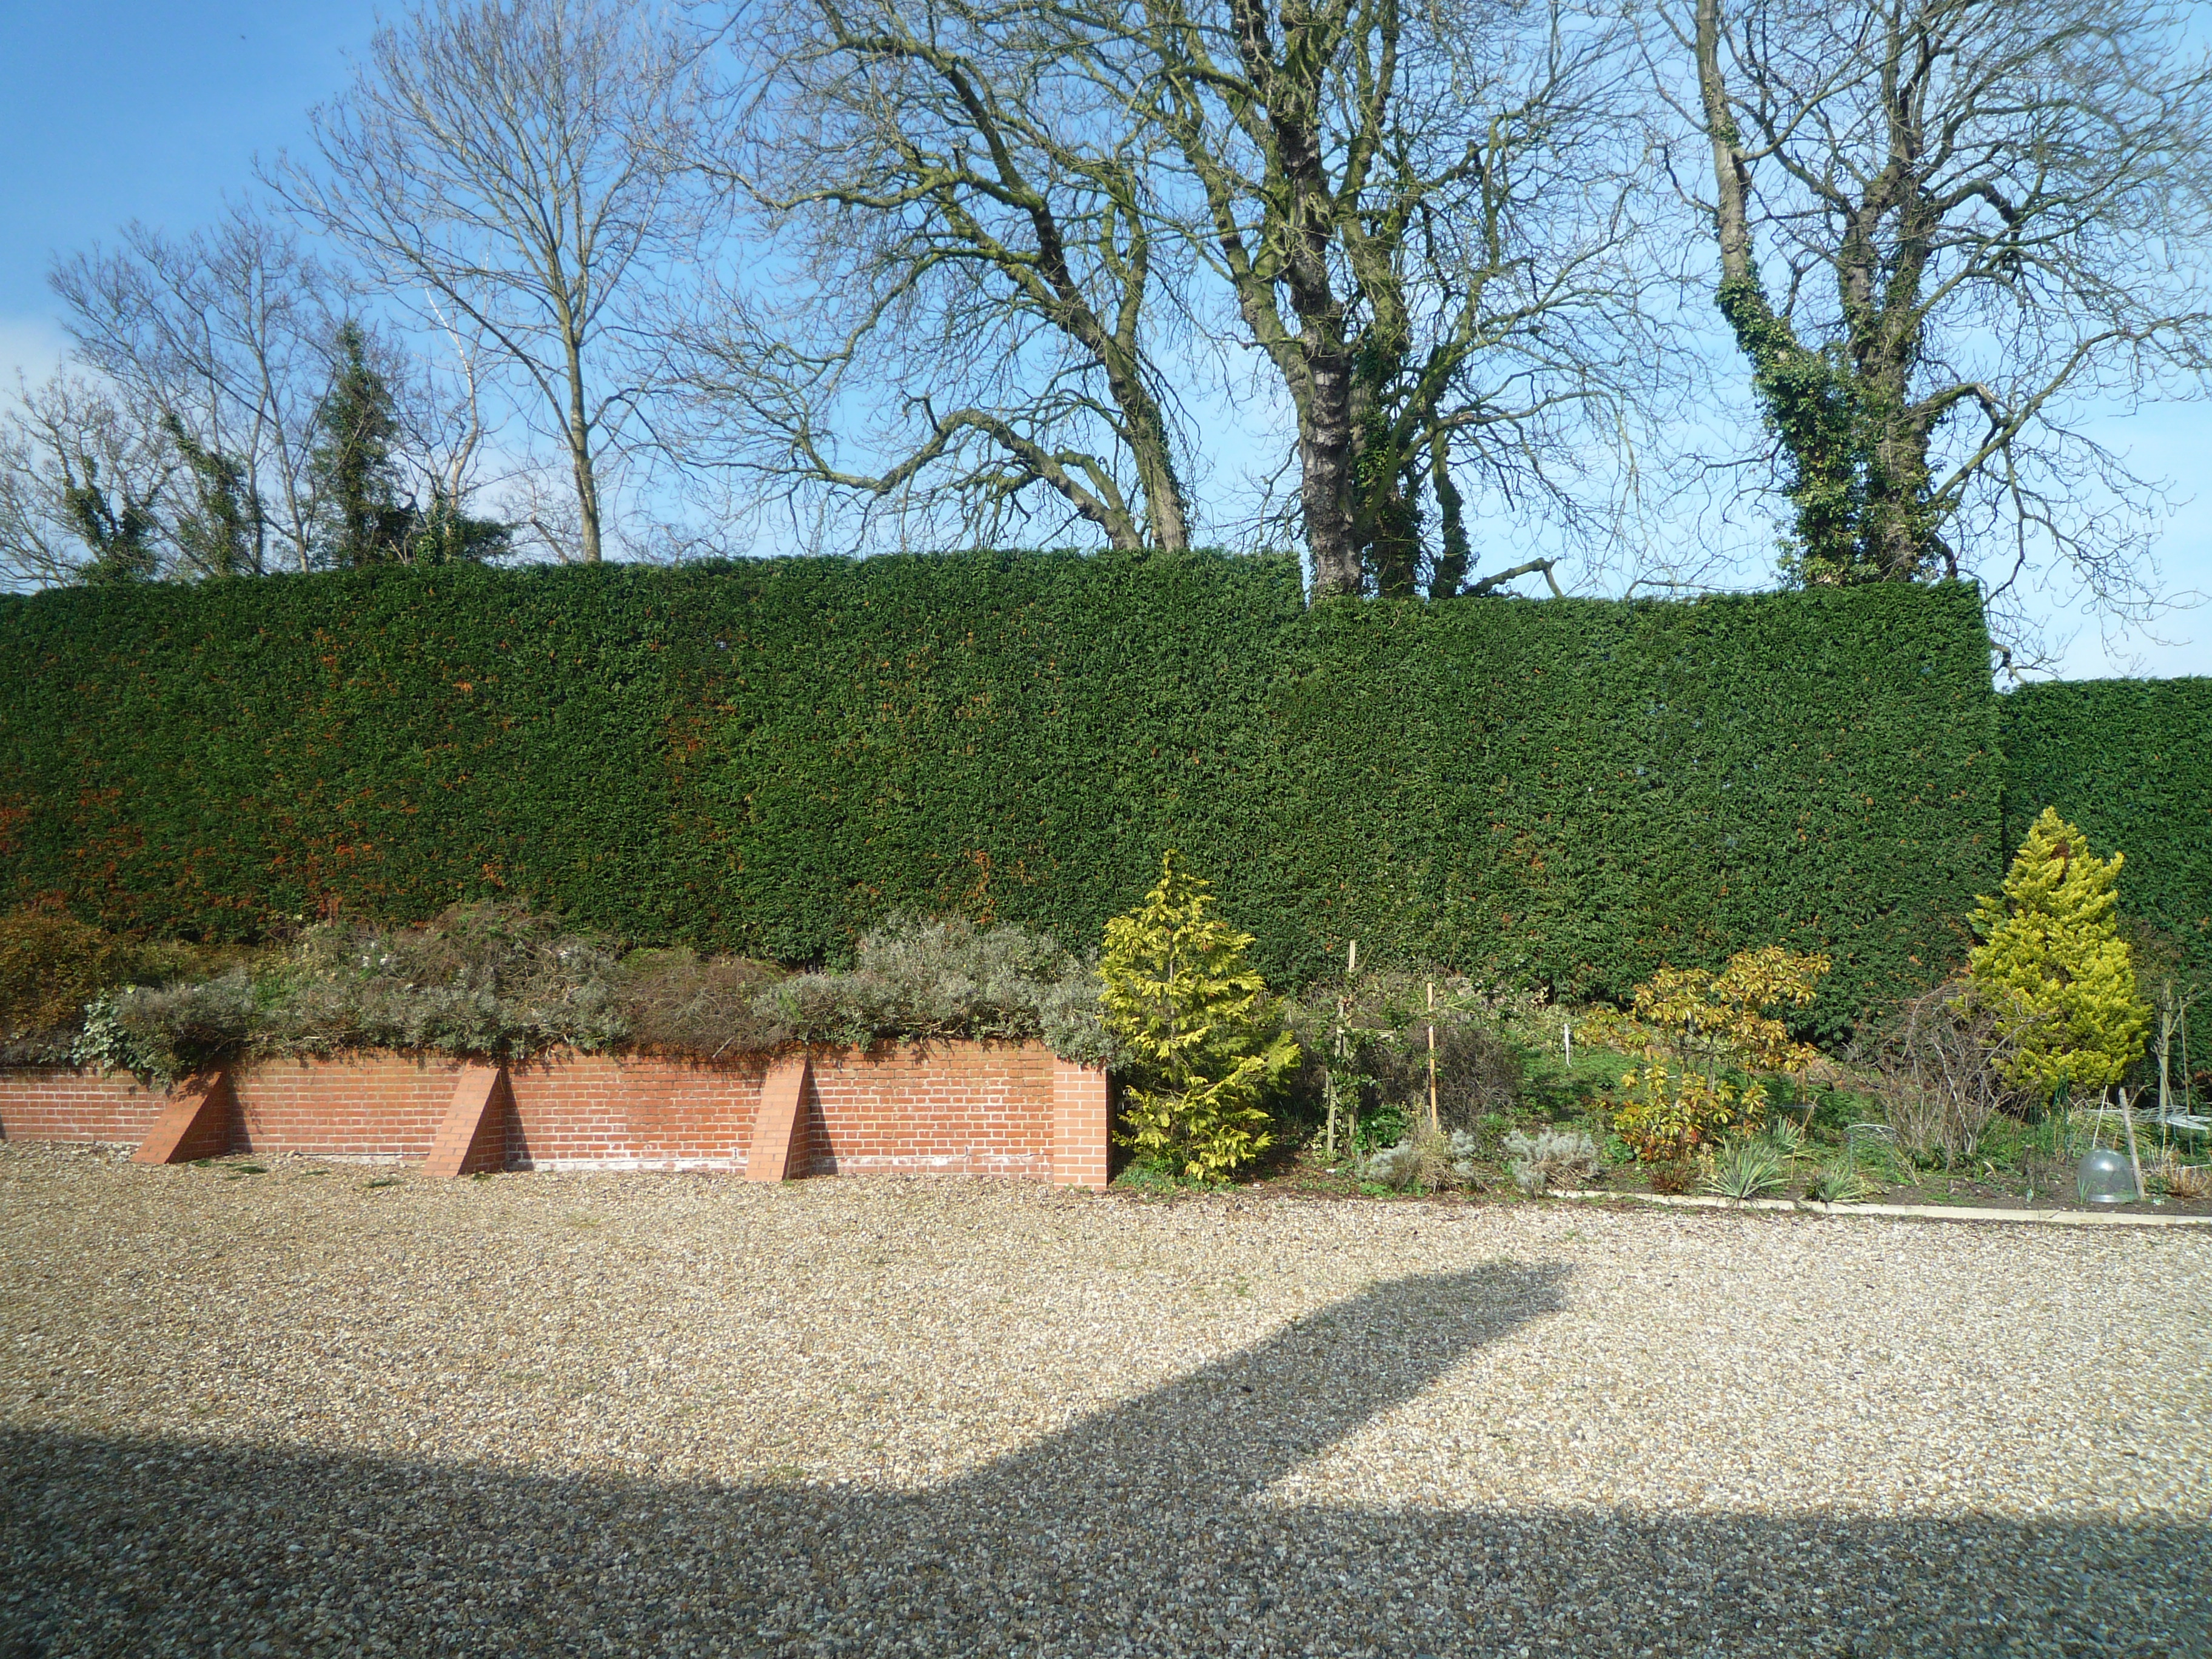 Hedge Reduction and Trimming image 2117770726